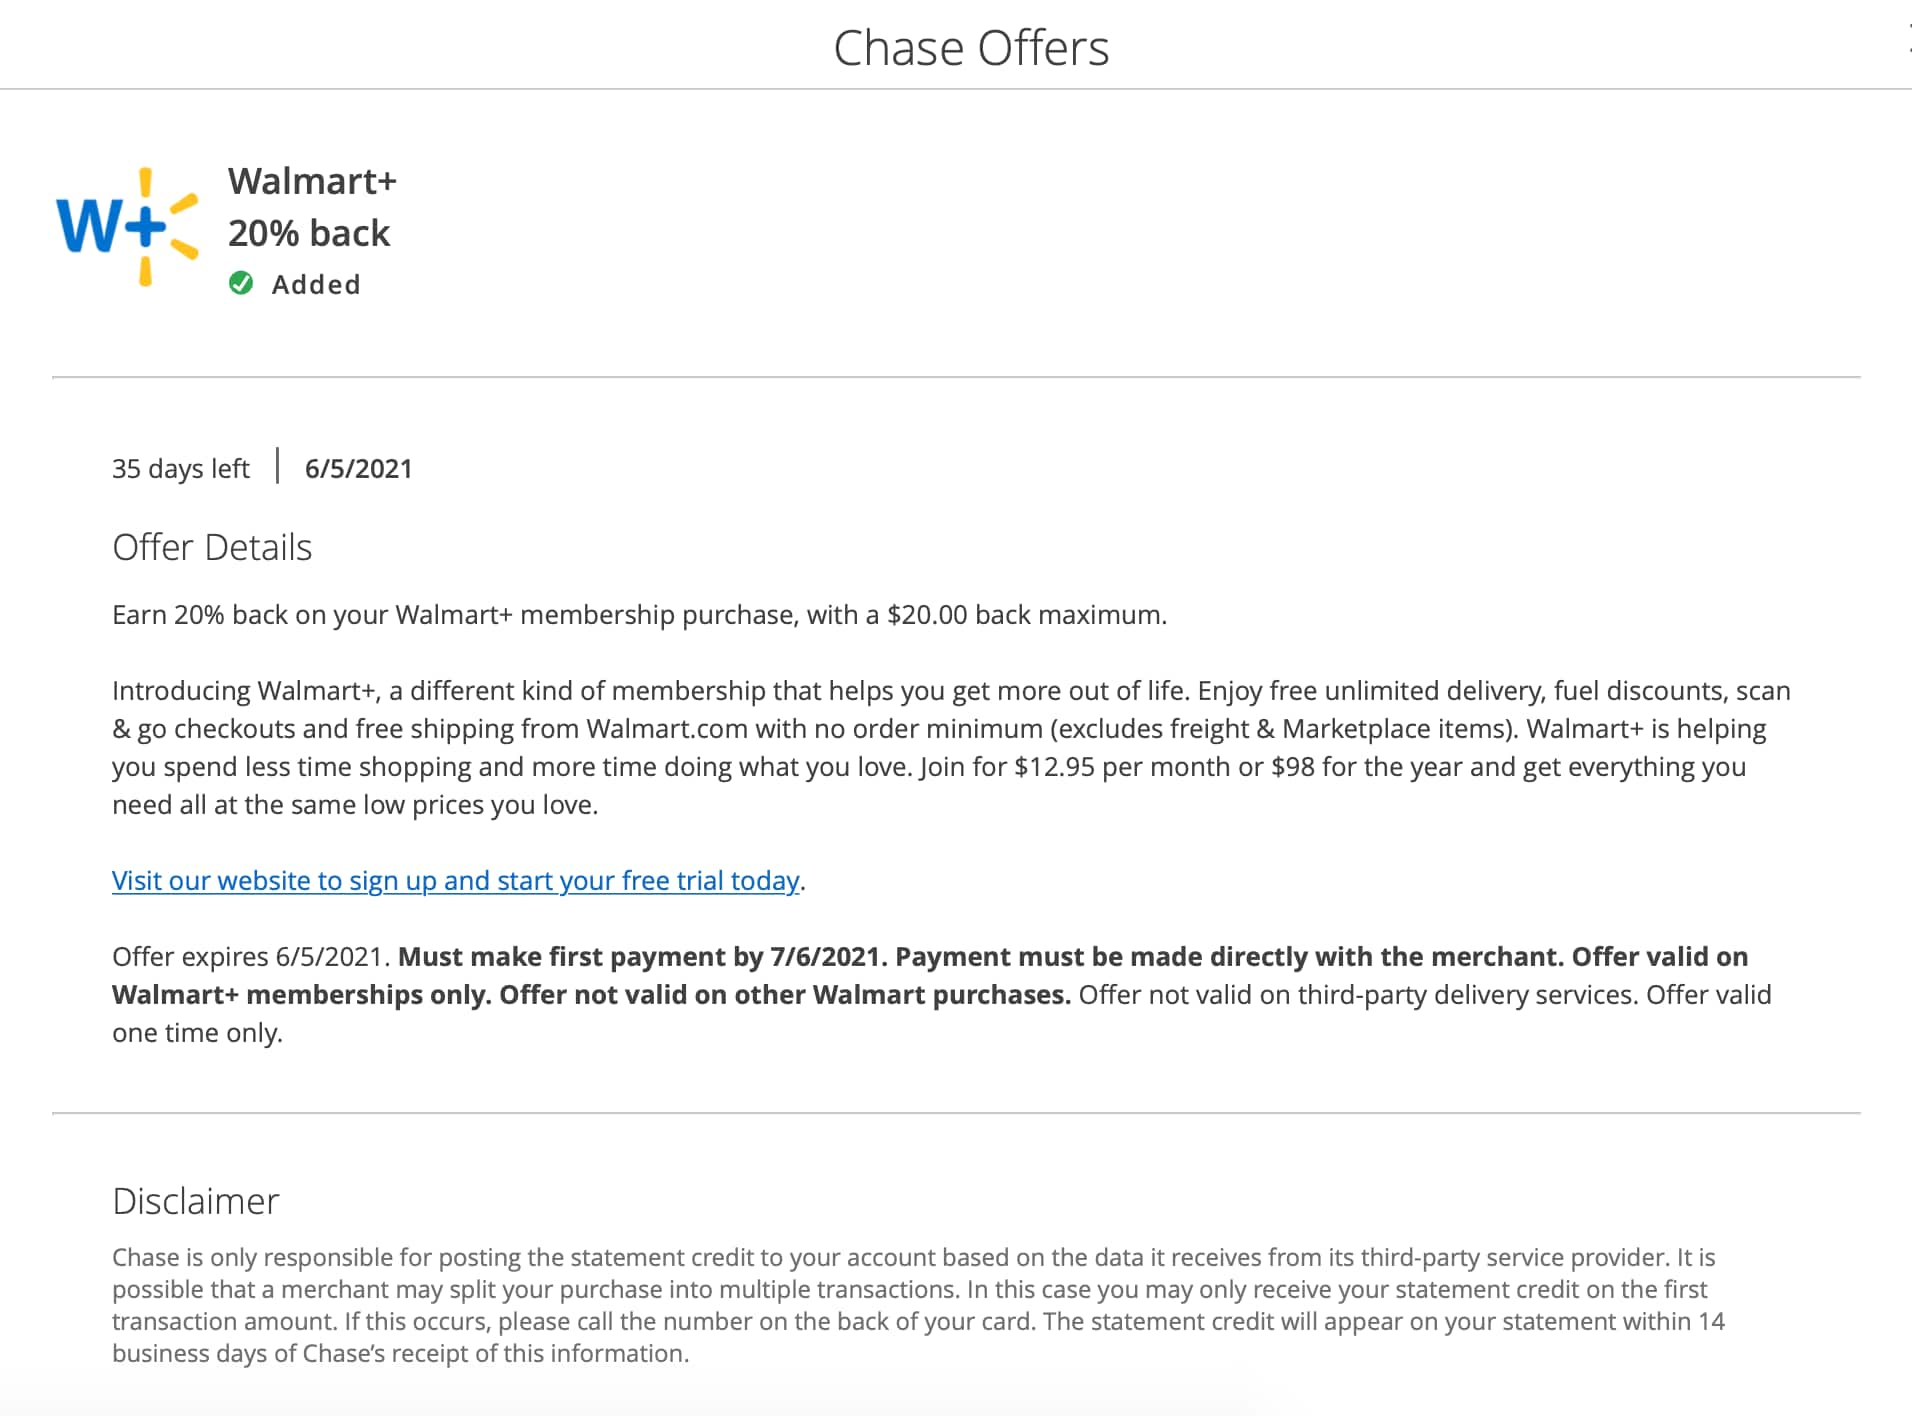 Walmart + Subscription 20% Cash Back Via Chase Card Promo Up To $20 Cash Back, Perfect For A 1 Year Membership